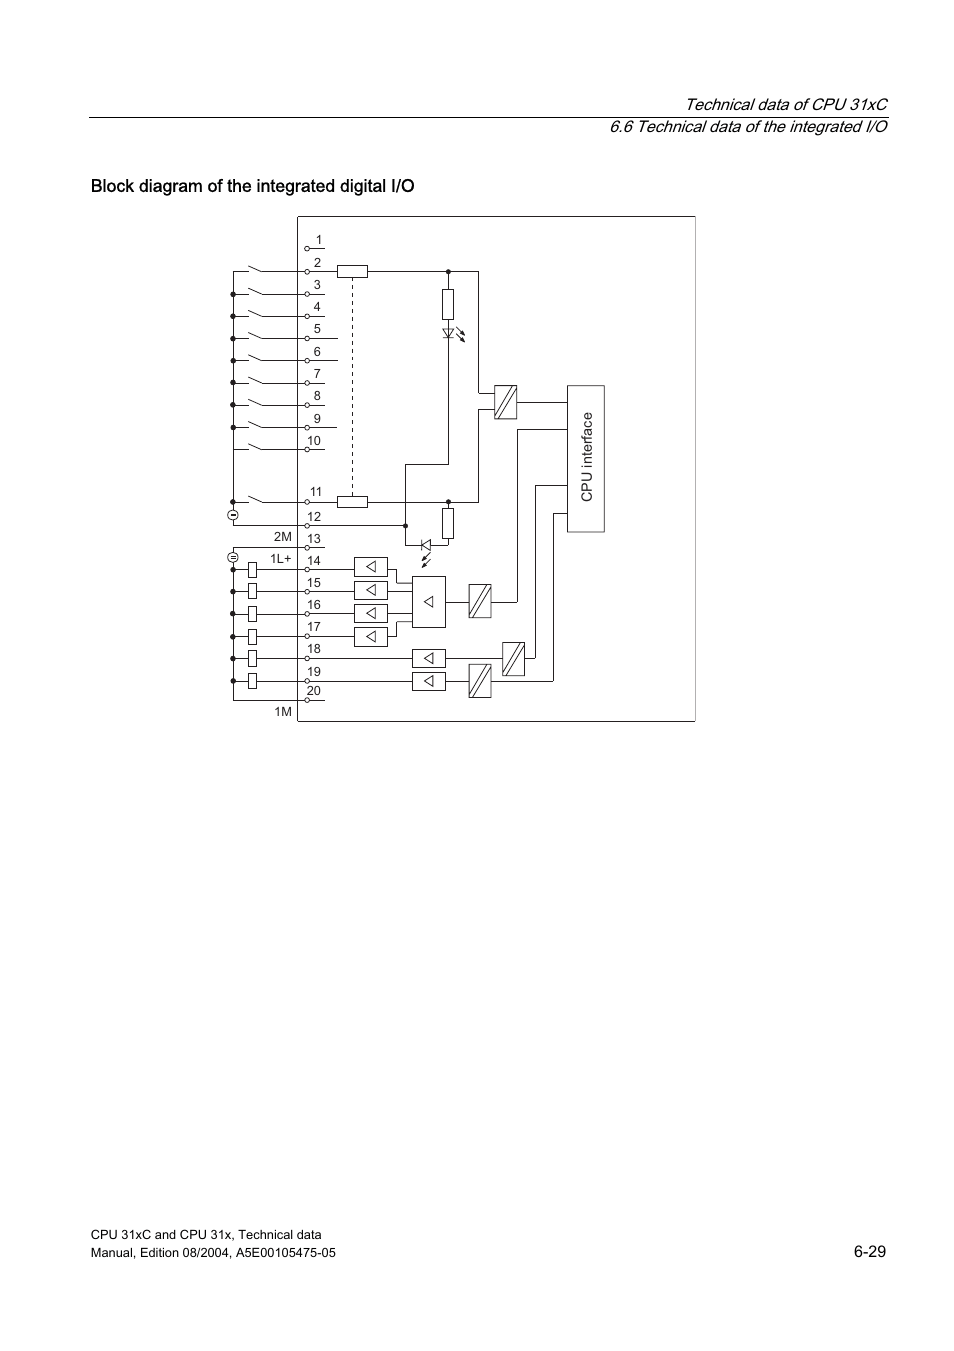 hight resolution of block diagram of the integrated digital i o siemens simatic s7 300 cpu